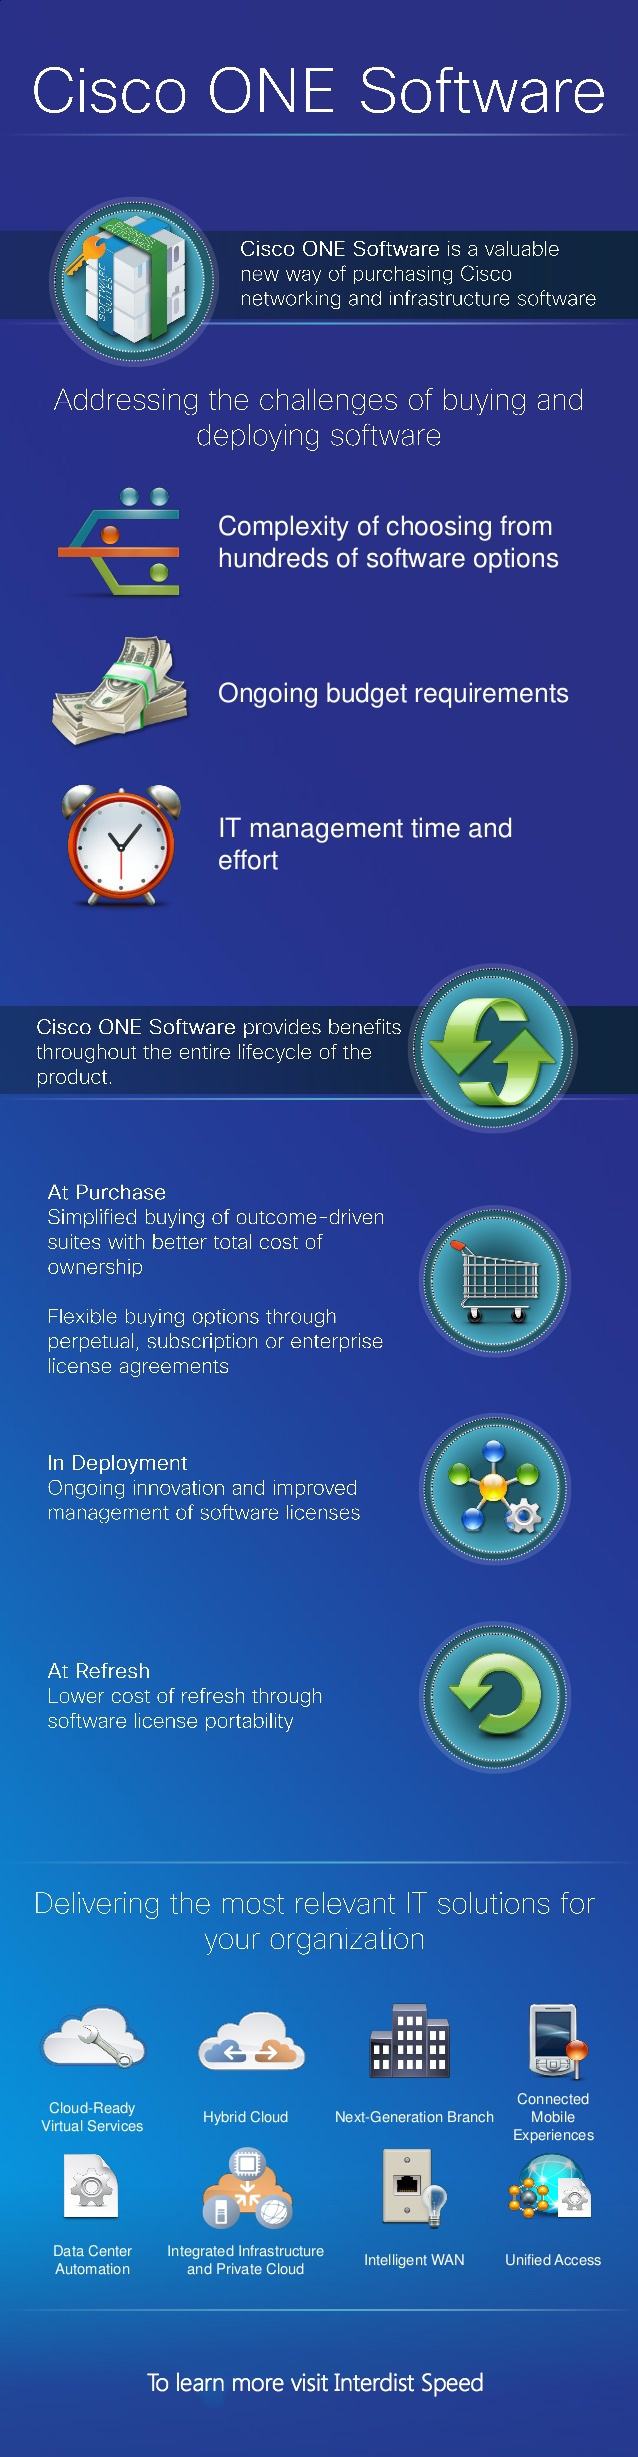 cisco-one-software-infographic.jpg